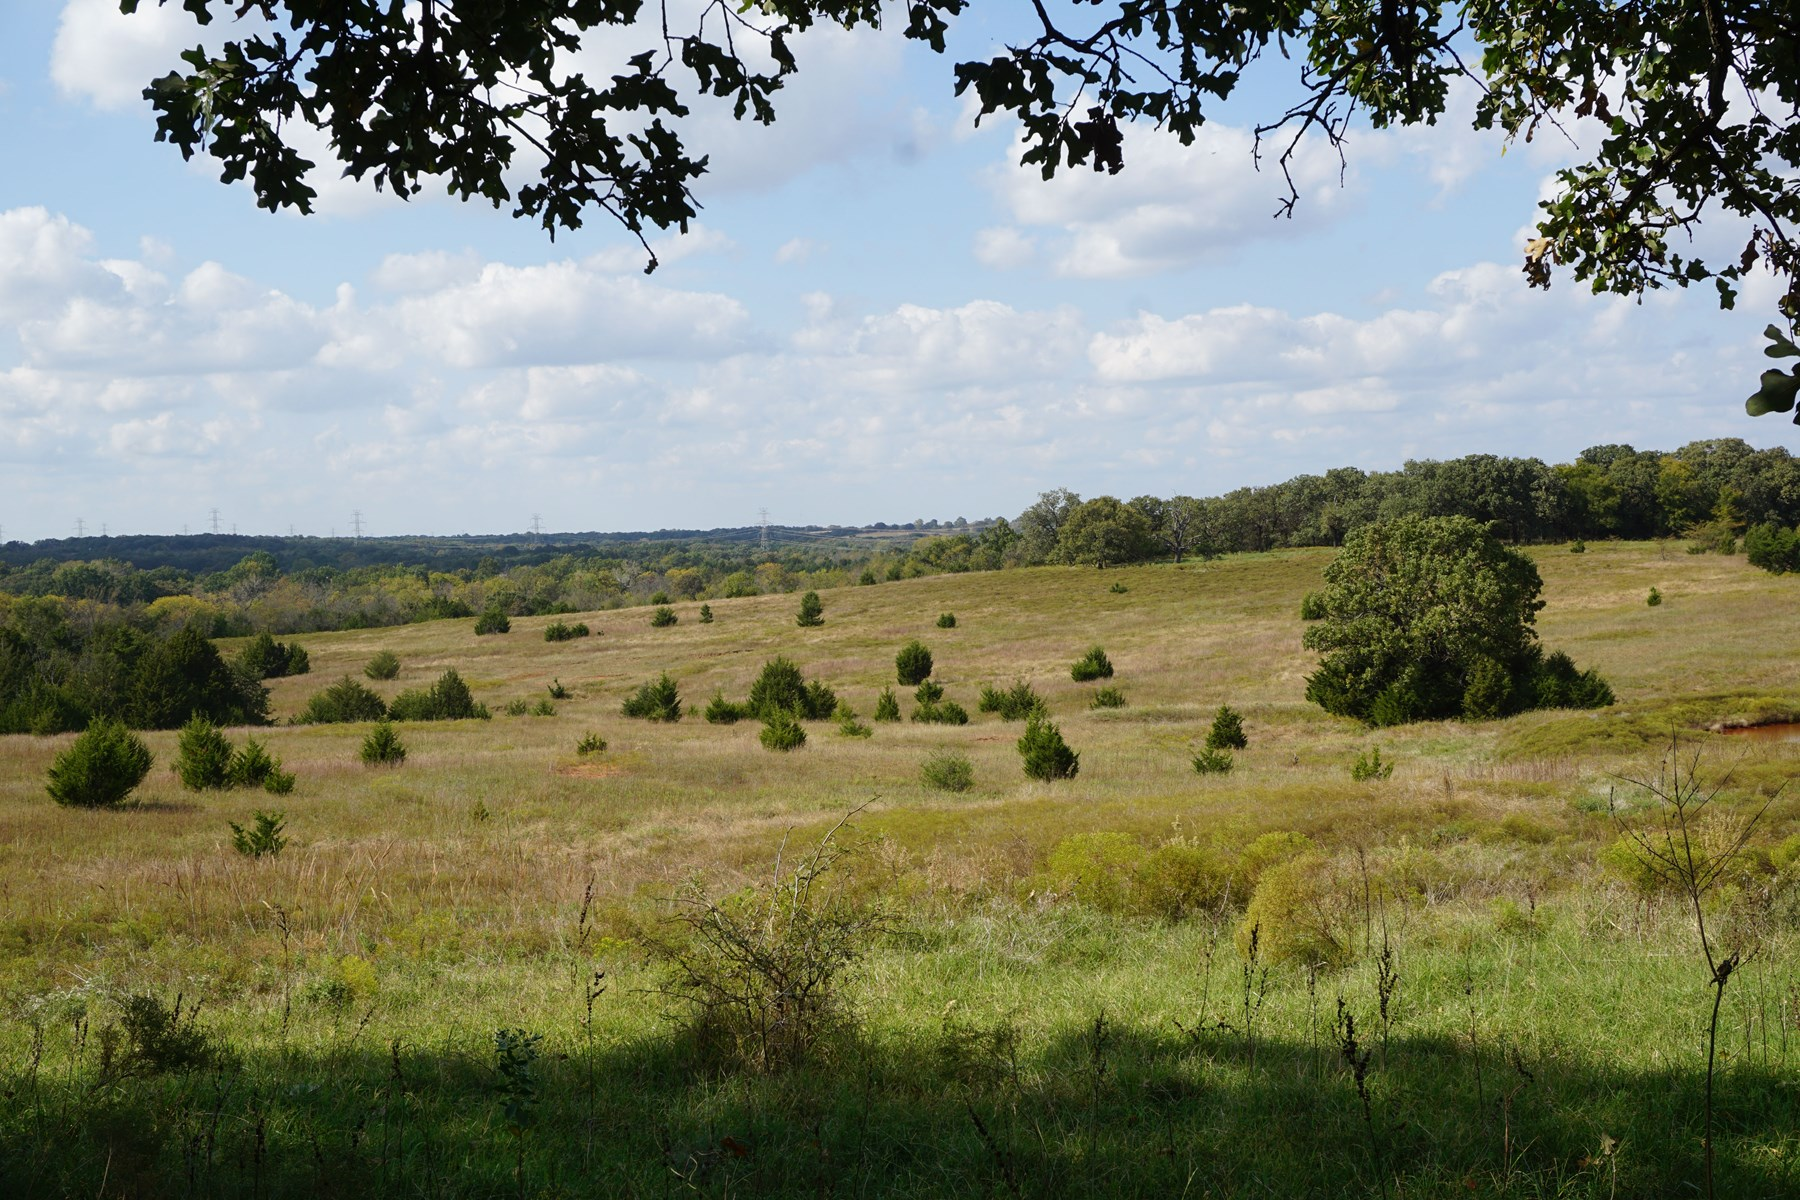 No Reserve Land Auction, 160 Ac Lincoln Co. Nov 8, 1:30 pm